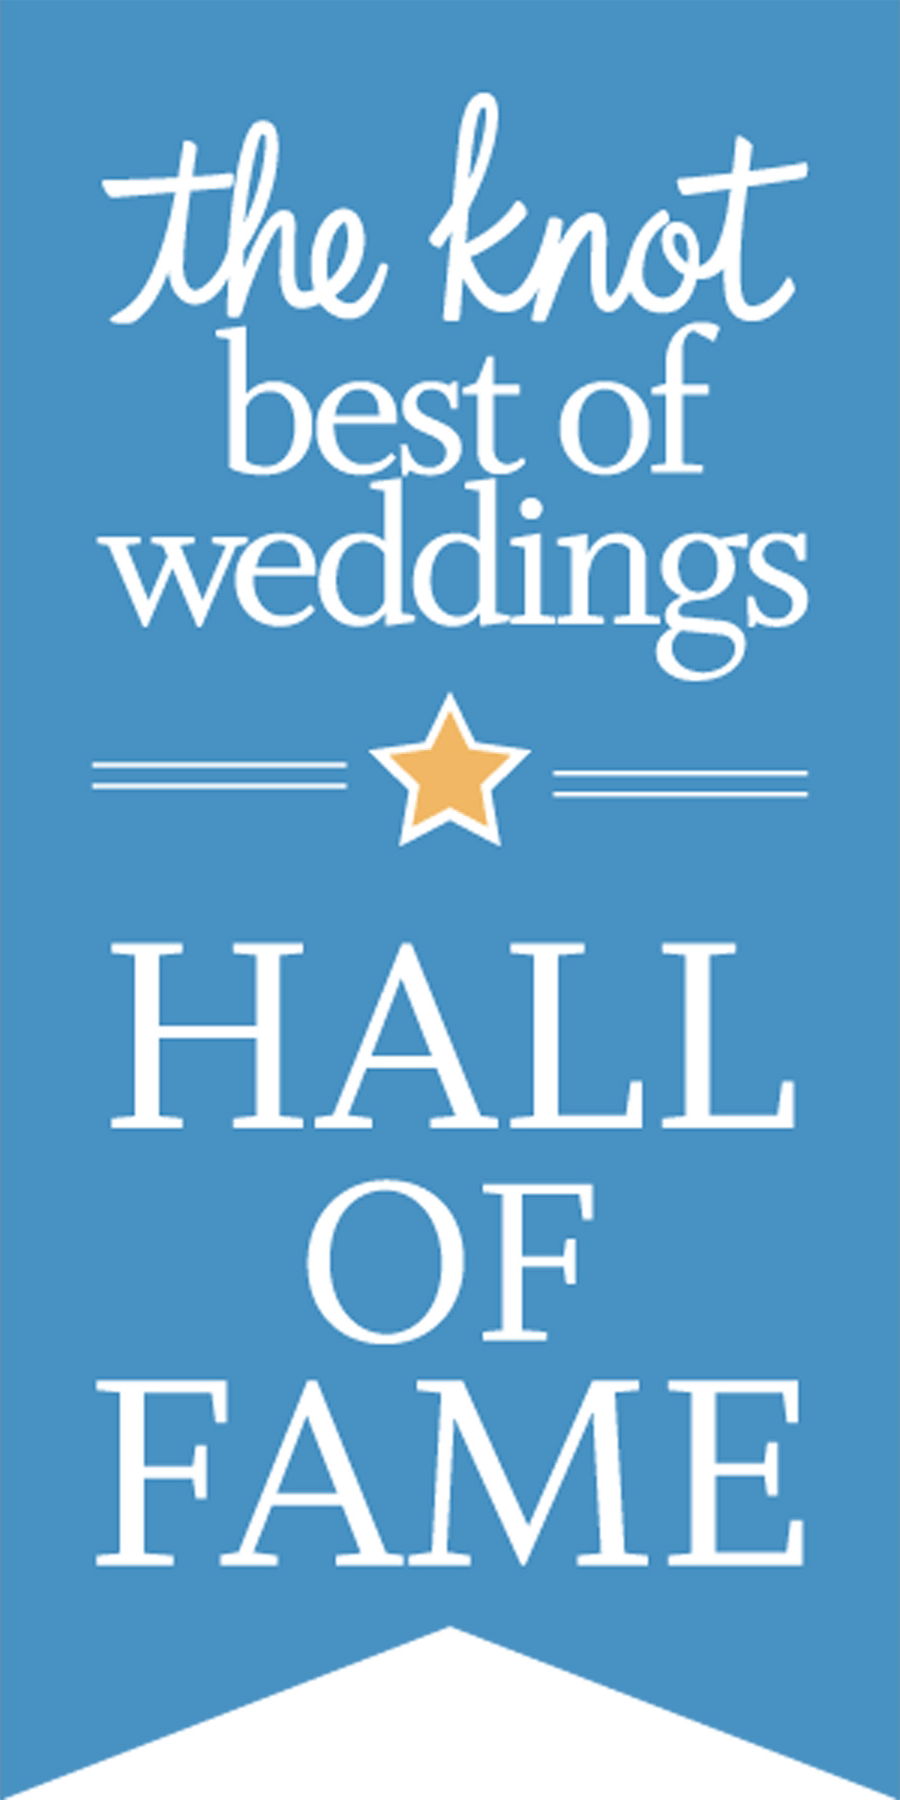 The Knot Wedding Hall of Fame